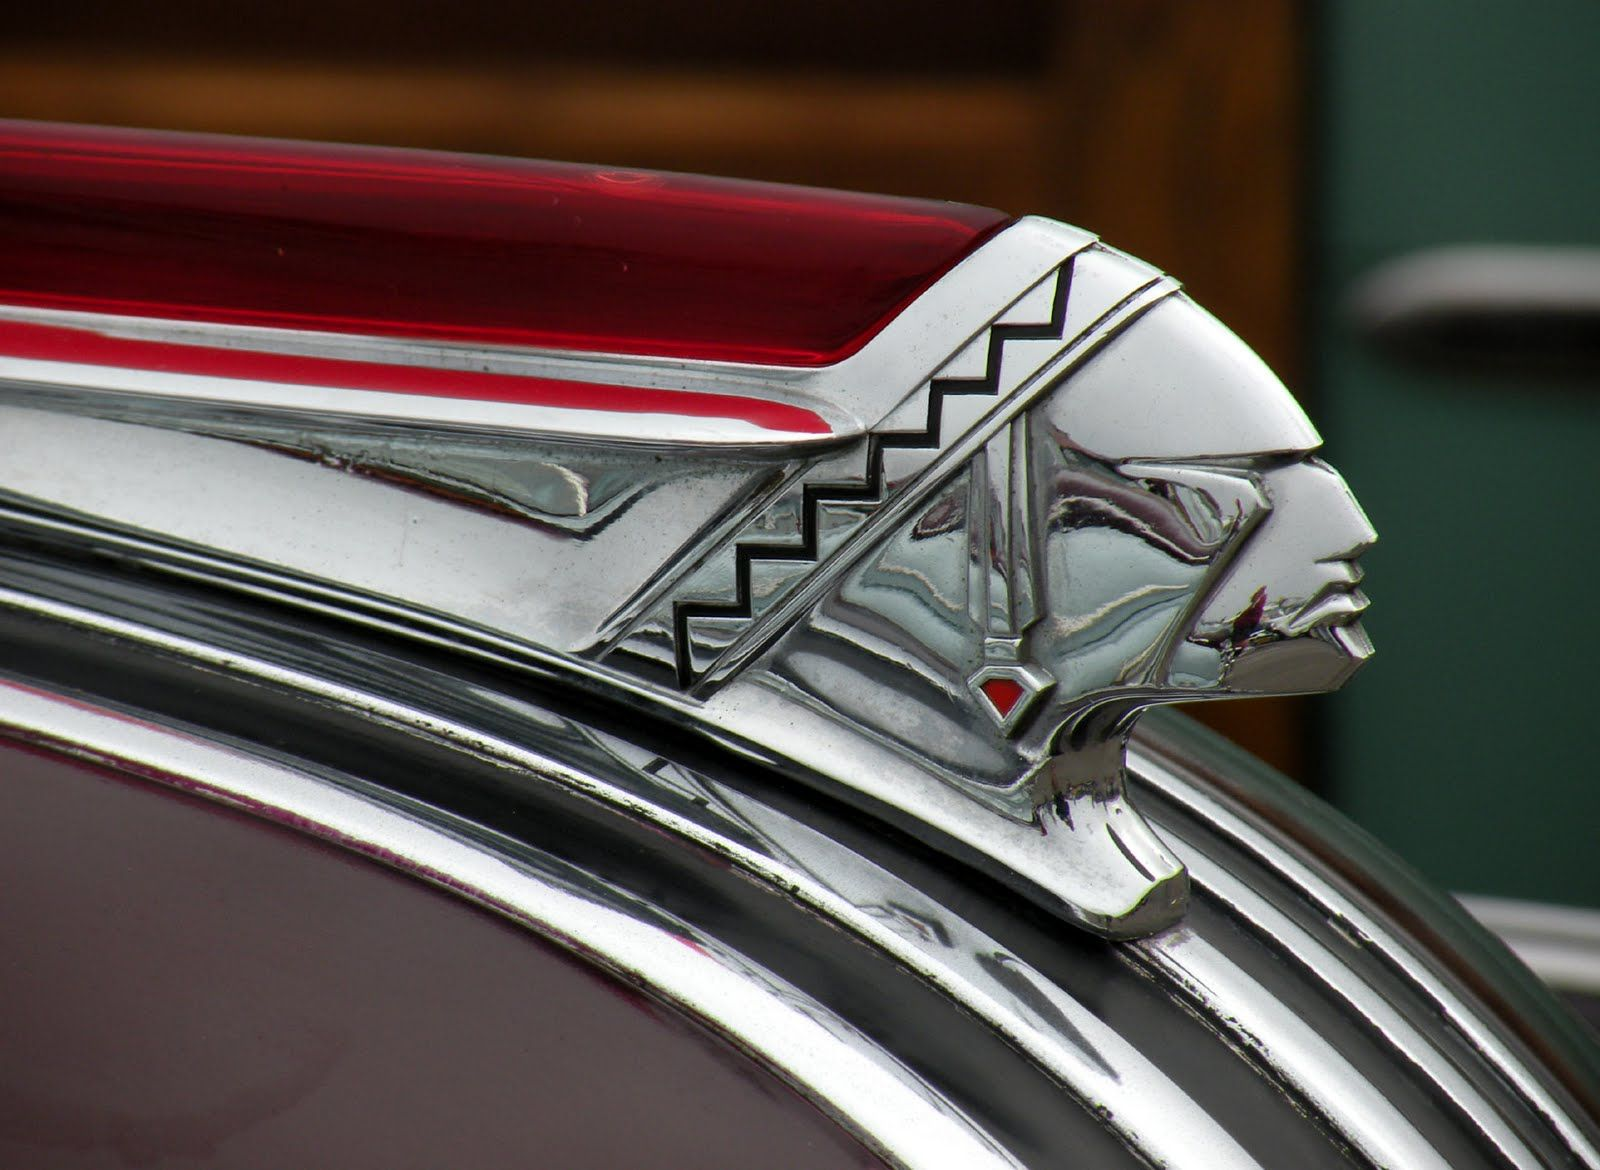 Lalique hood ornaments - Pontiac Hood Ornaments Consistantly Various On The Theme Of Indian Chiefs